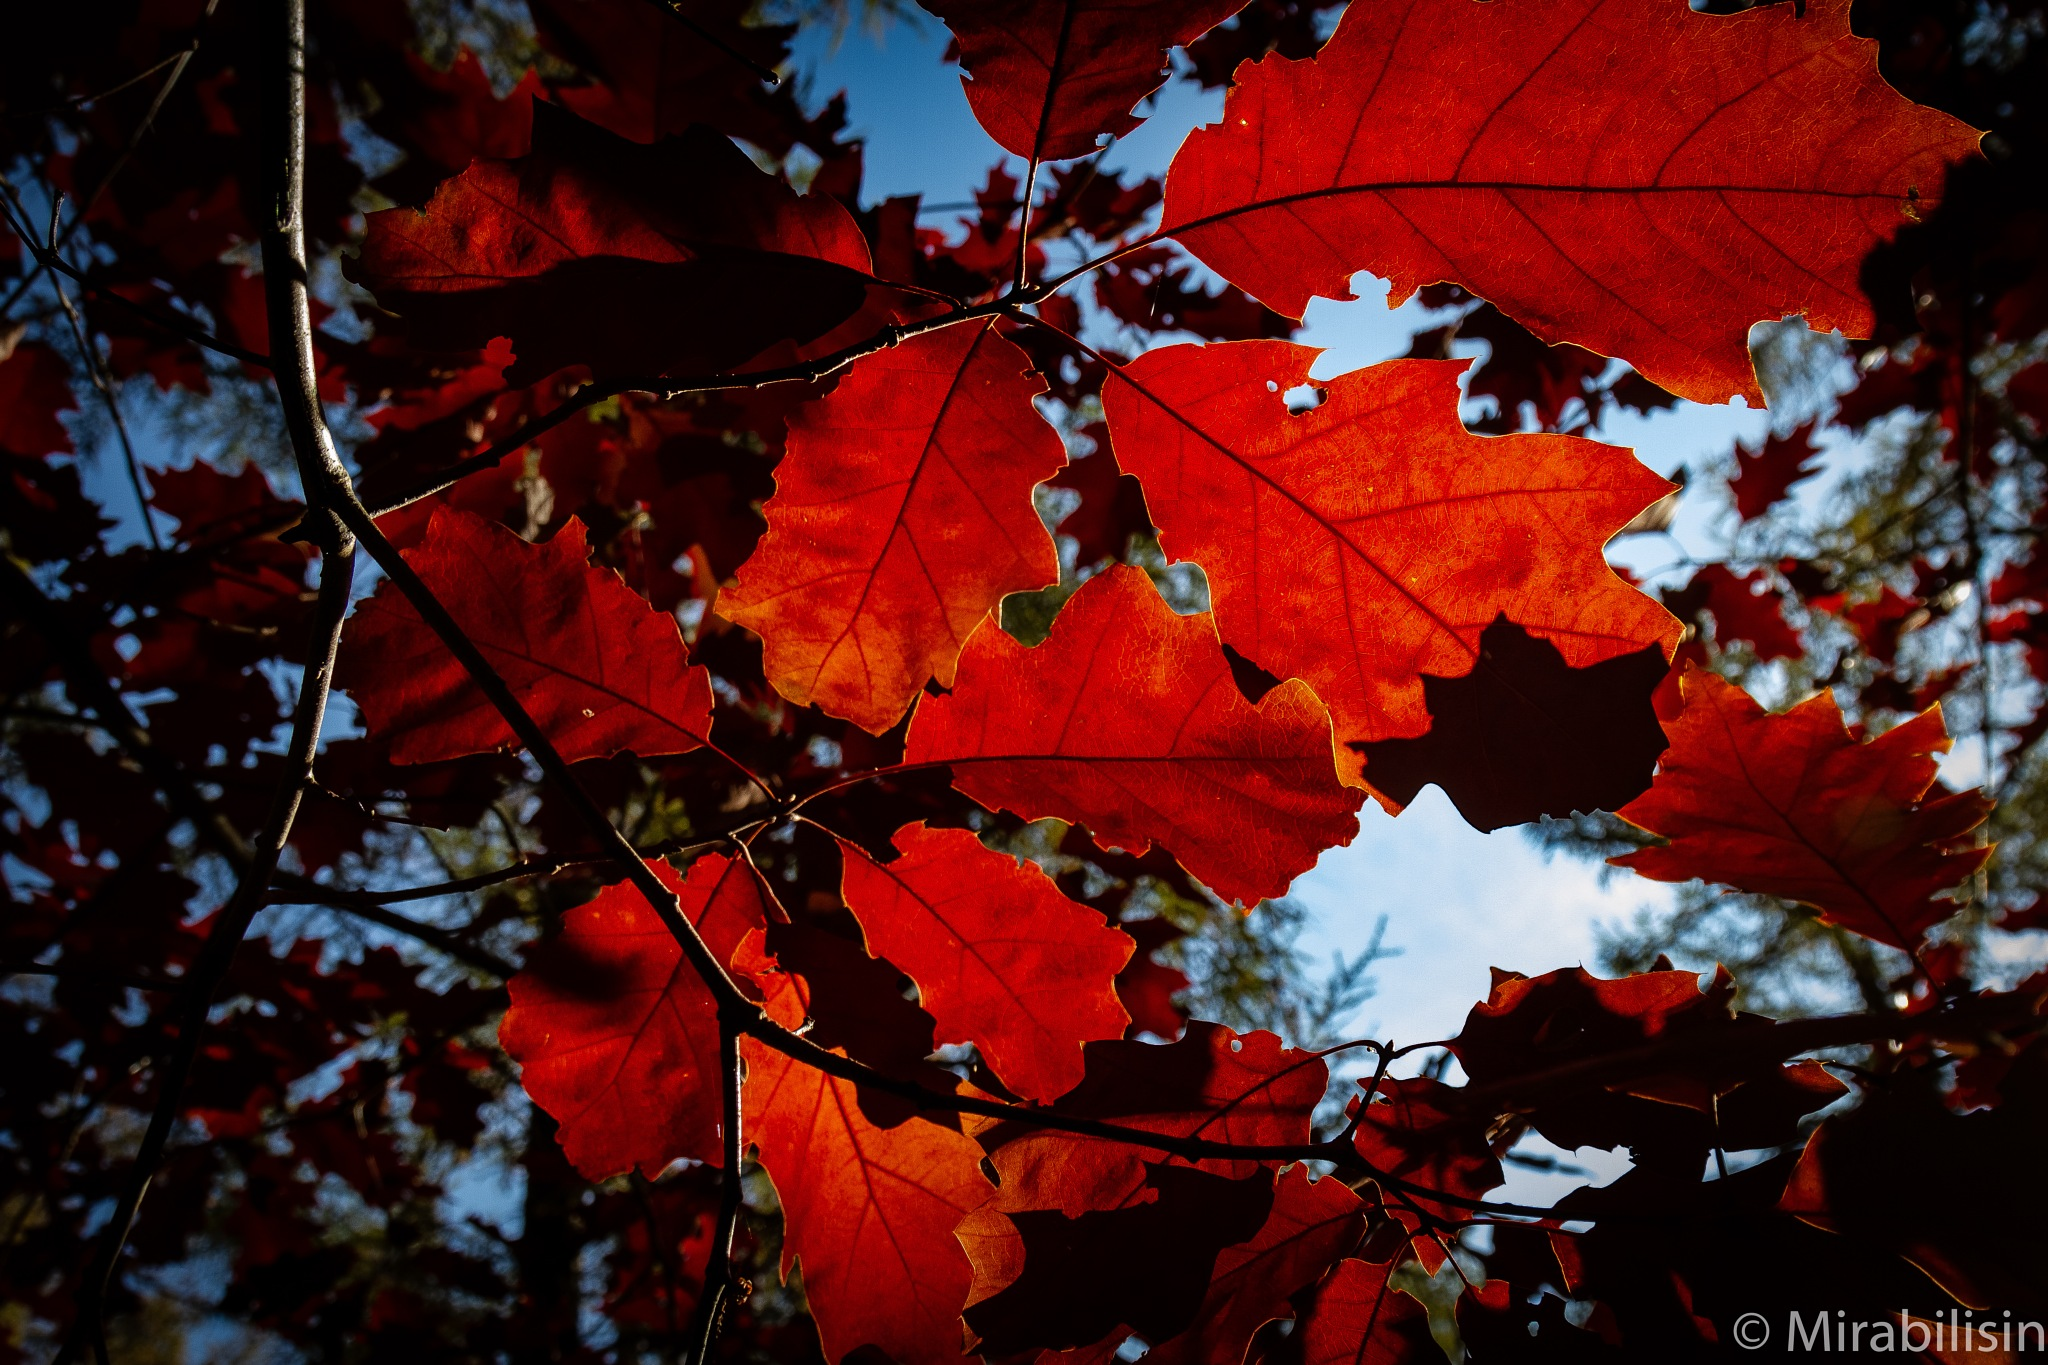 Red leafs  by Mirabilis in horto